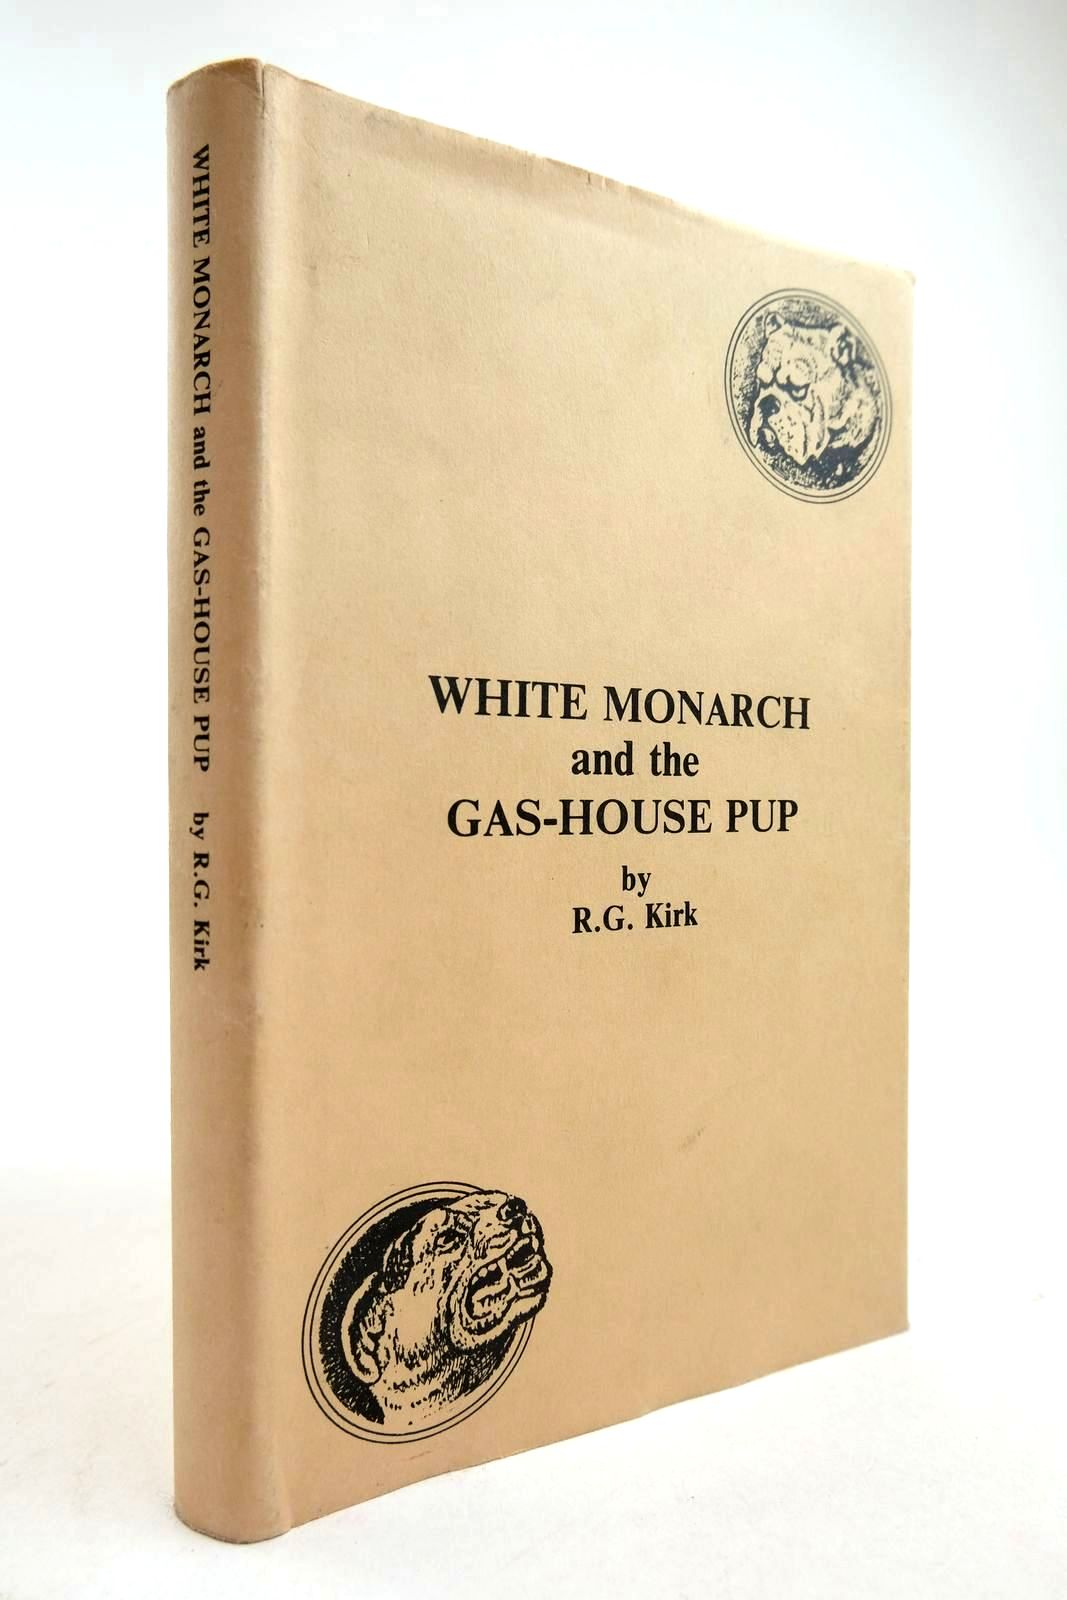 Photo of WHITE MONARCH AND THE GAS-HOUSE PUP written by Kirk, R.G. Homan, M. published by The Dog Club Magazine (STOCK CODE: 2134259)  for sale by Stella & Rose's Books